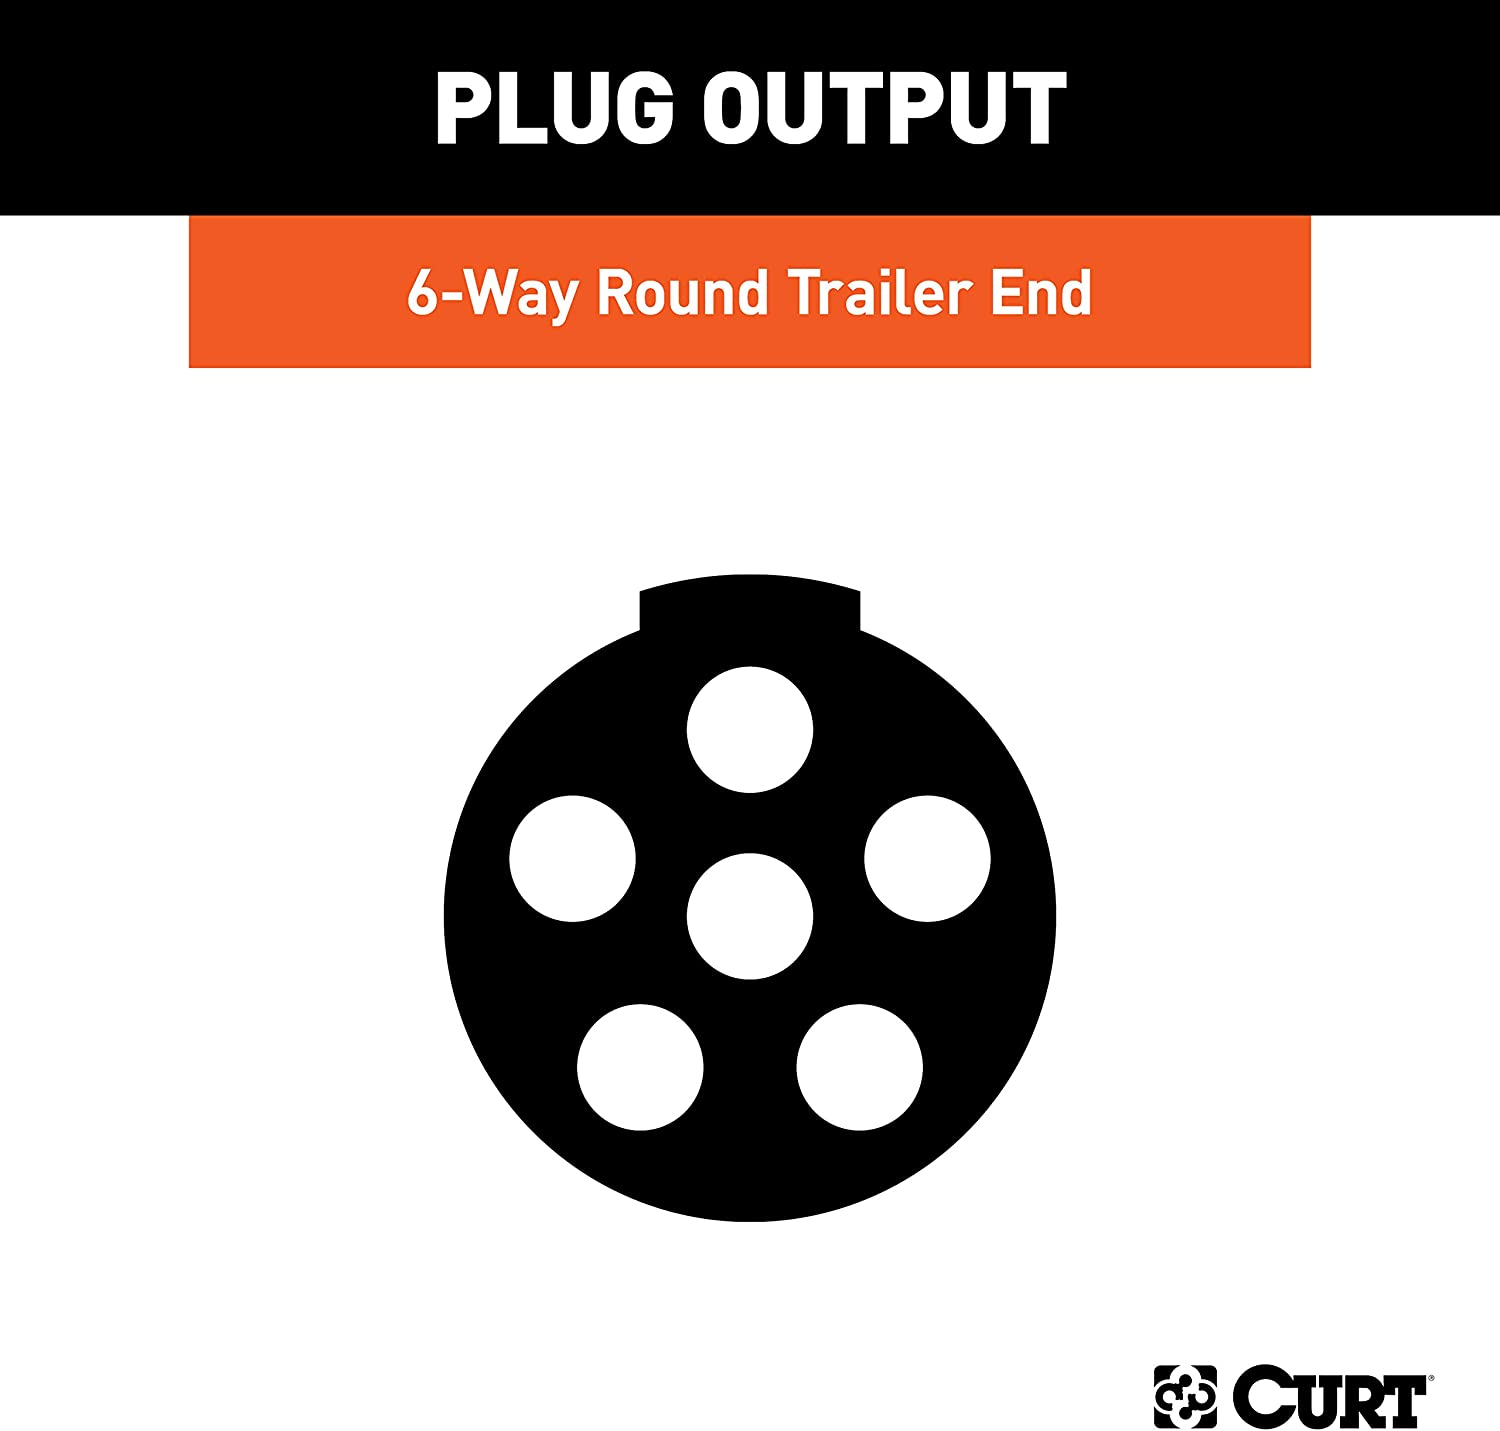 Trailer Hookup Wiring Diagram from images-na.ssl-images-amazon.com